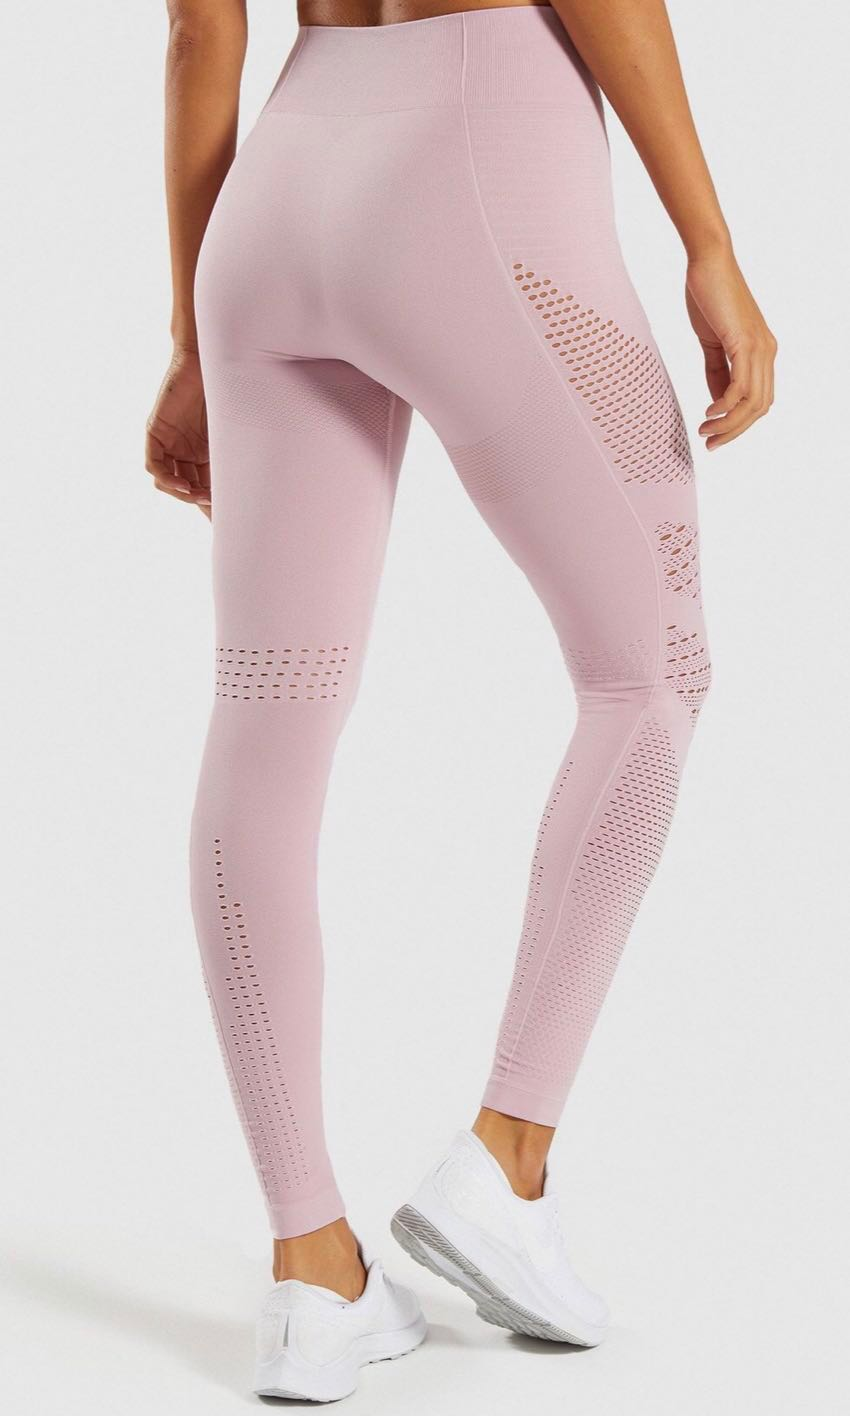 bf72bd3aa215e Gymshark flawless knit leggings (size S), Sports, Sports Apparel on  Carousell